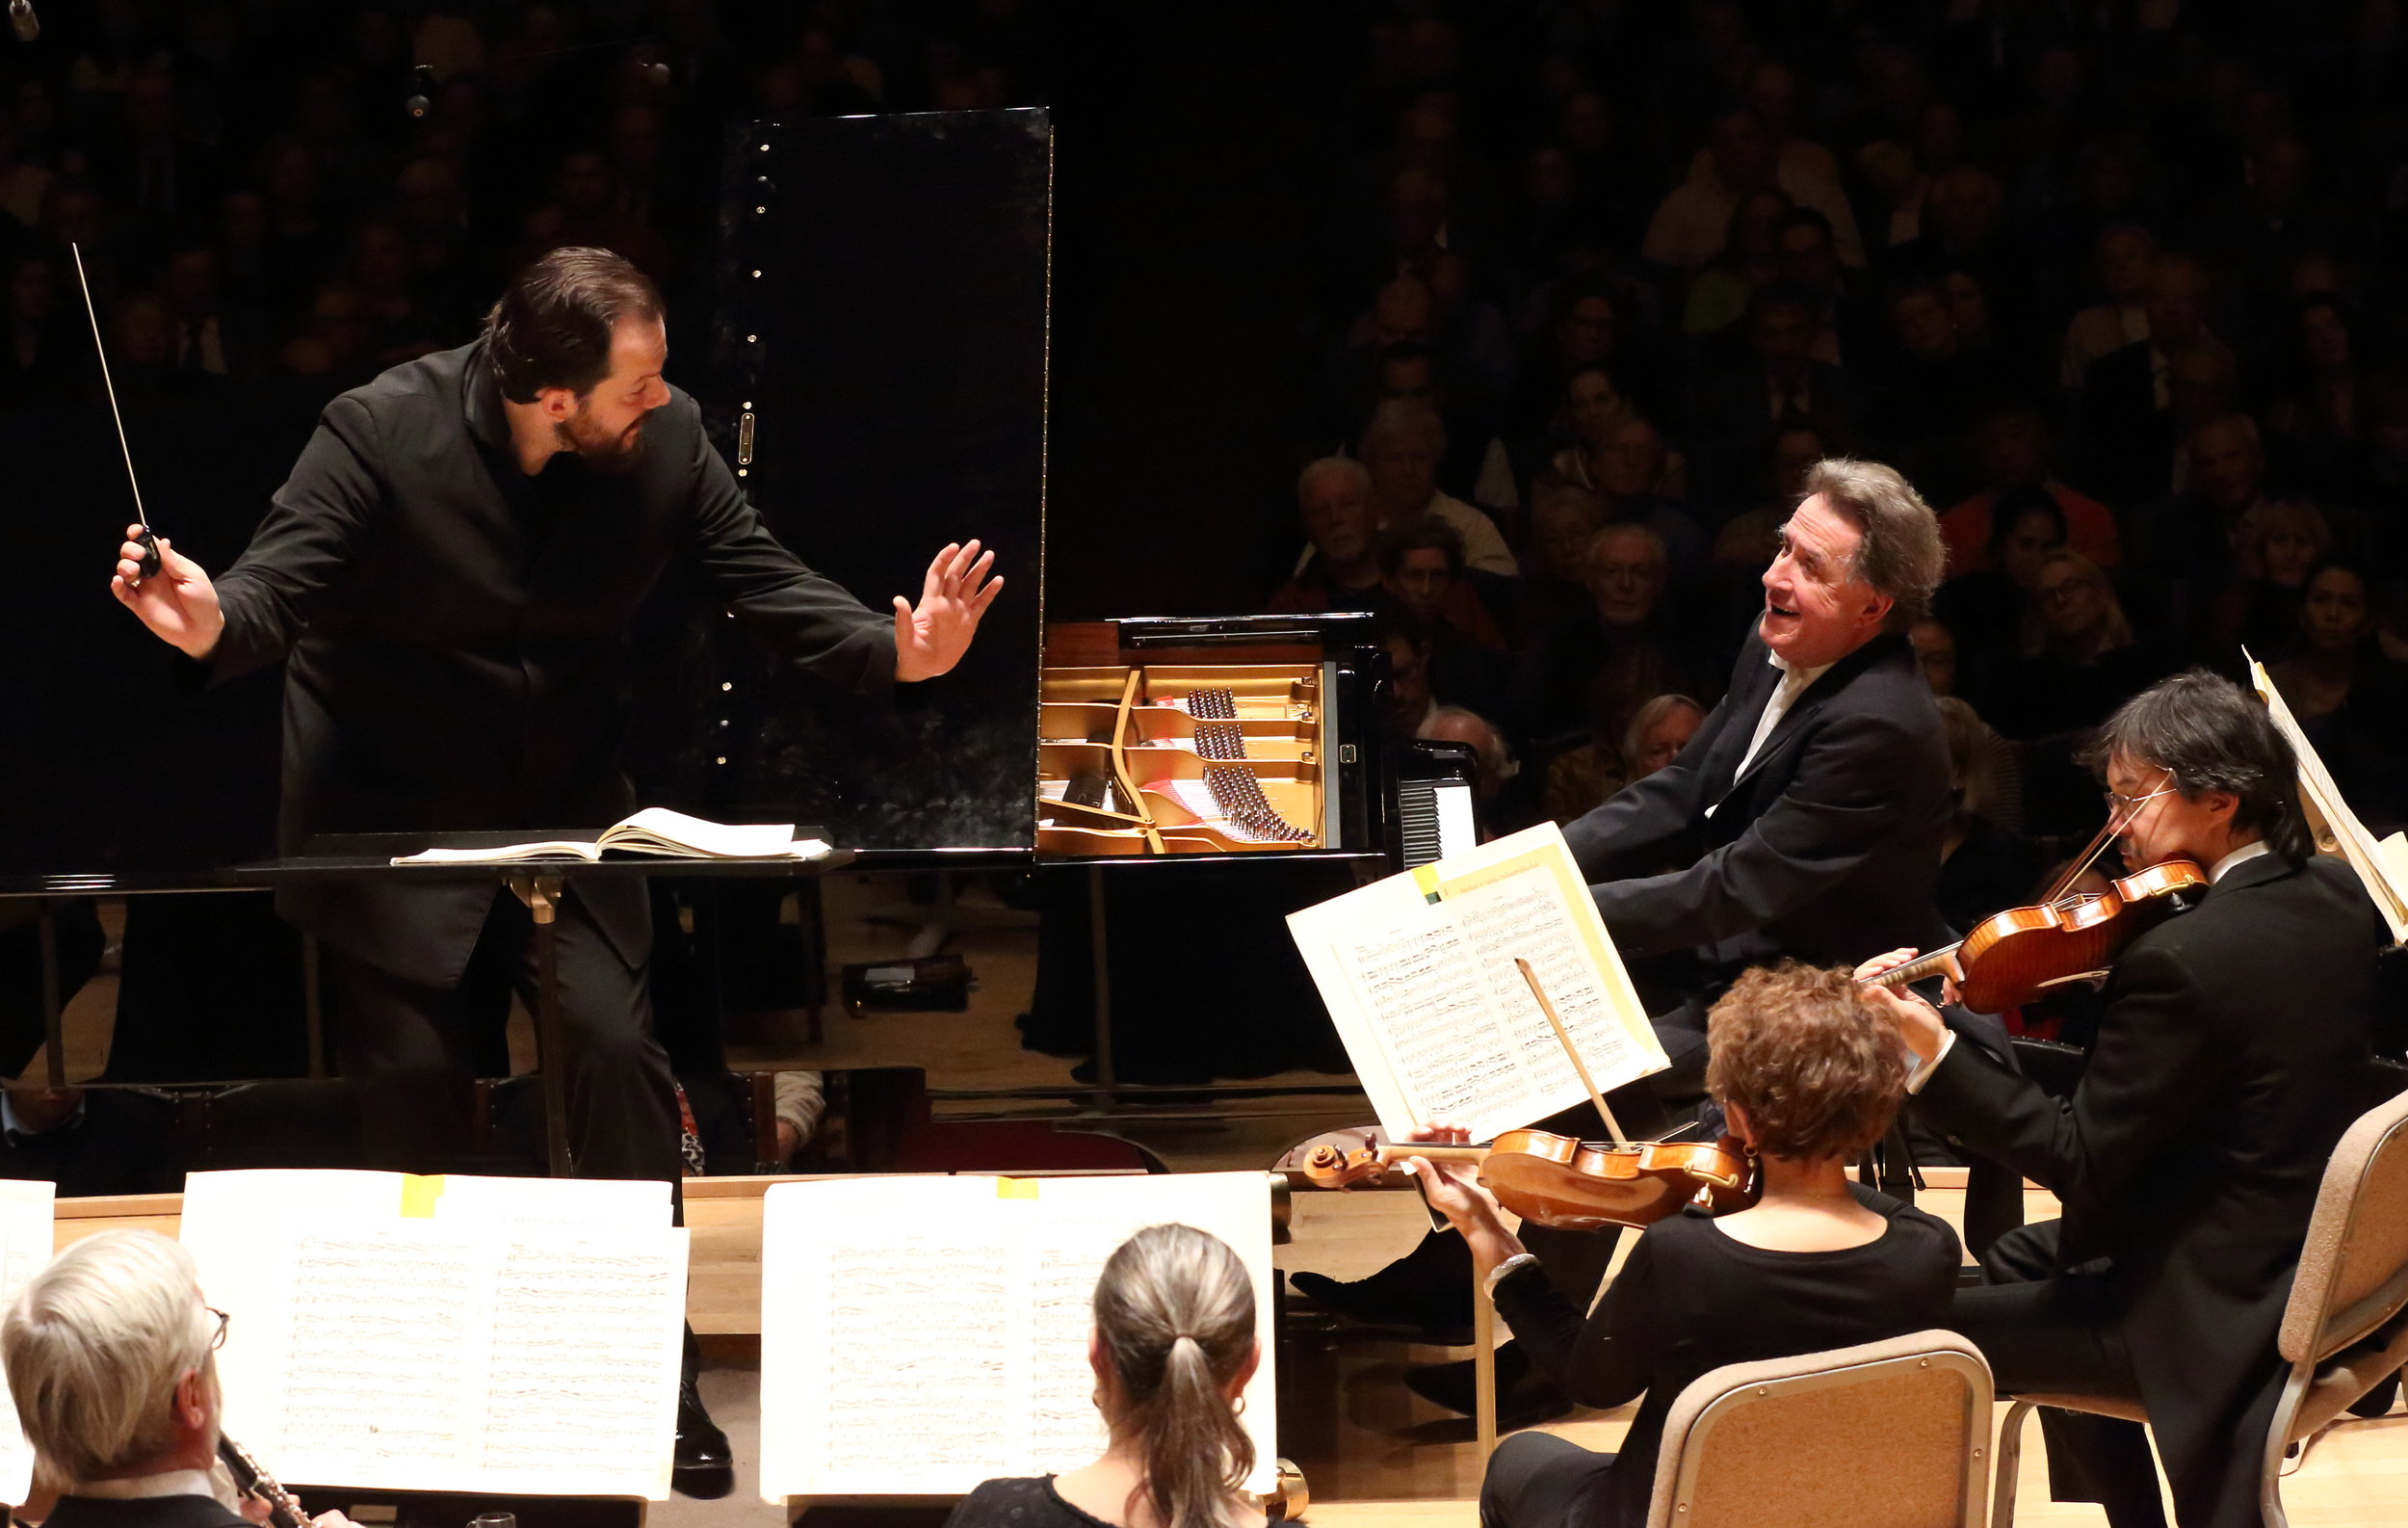 Music director Andris Nelsons leads the Boston Symphony Orchestra in Beethoven' First Piano Concerto, with soloist Rudolf Buchbinder, Tuesday, Nov. 22. Hilary Scott photograph.